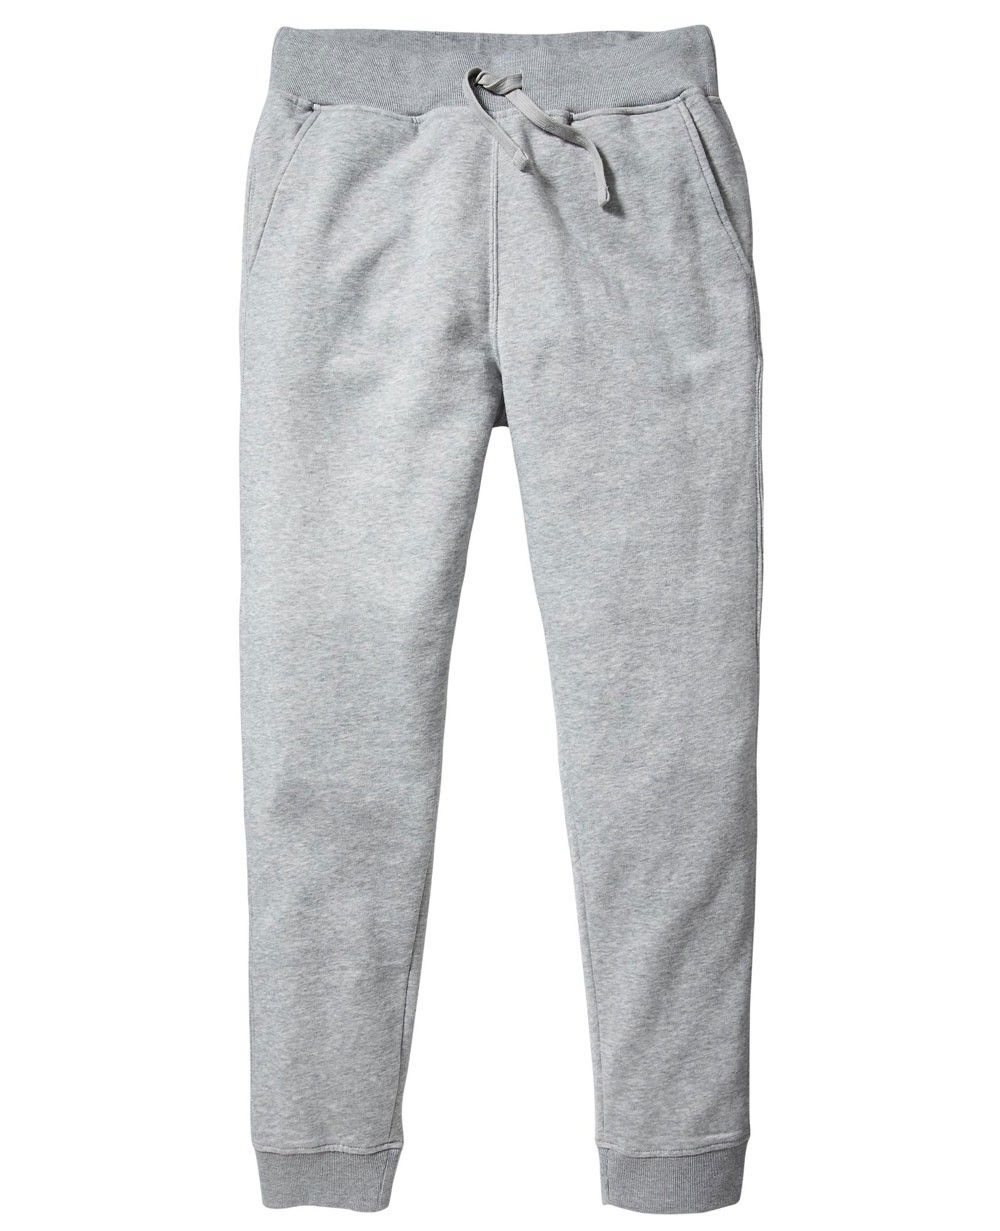 Http Www Quickapparels Com Men Grey Fleece Sweatpants Html Mens Sweatpants Fleece Sweatpants Mens Tall Sweatpants